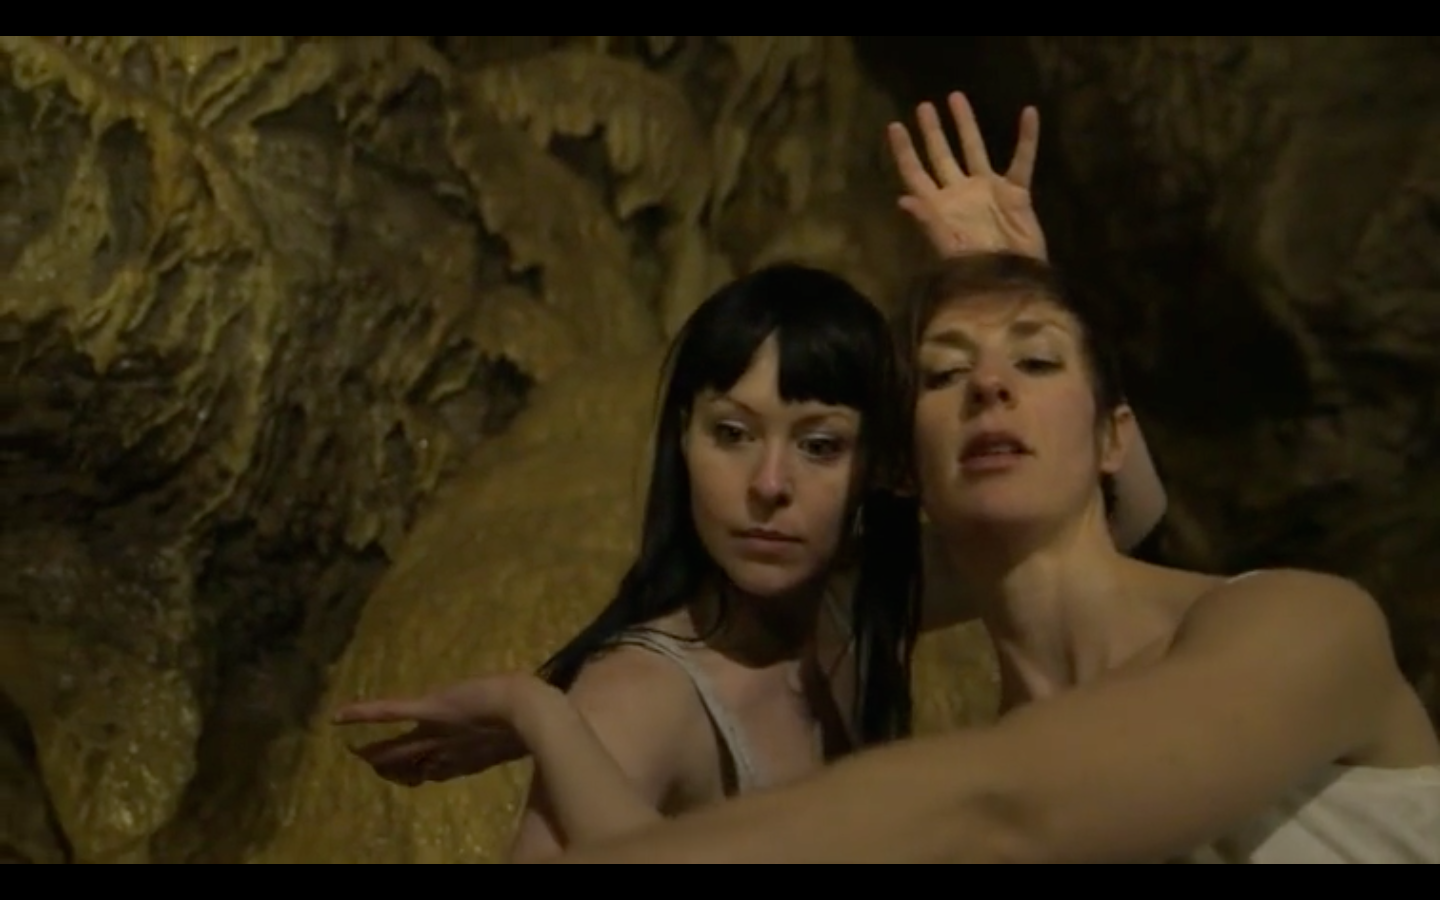 Ainsley Hillyard and Kate Stashko in Cavern, a dance intallation piece choreographed by Jen Mesch, sound by Scott Smallwood.